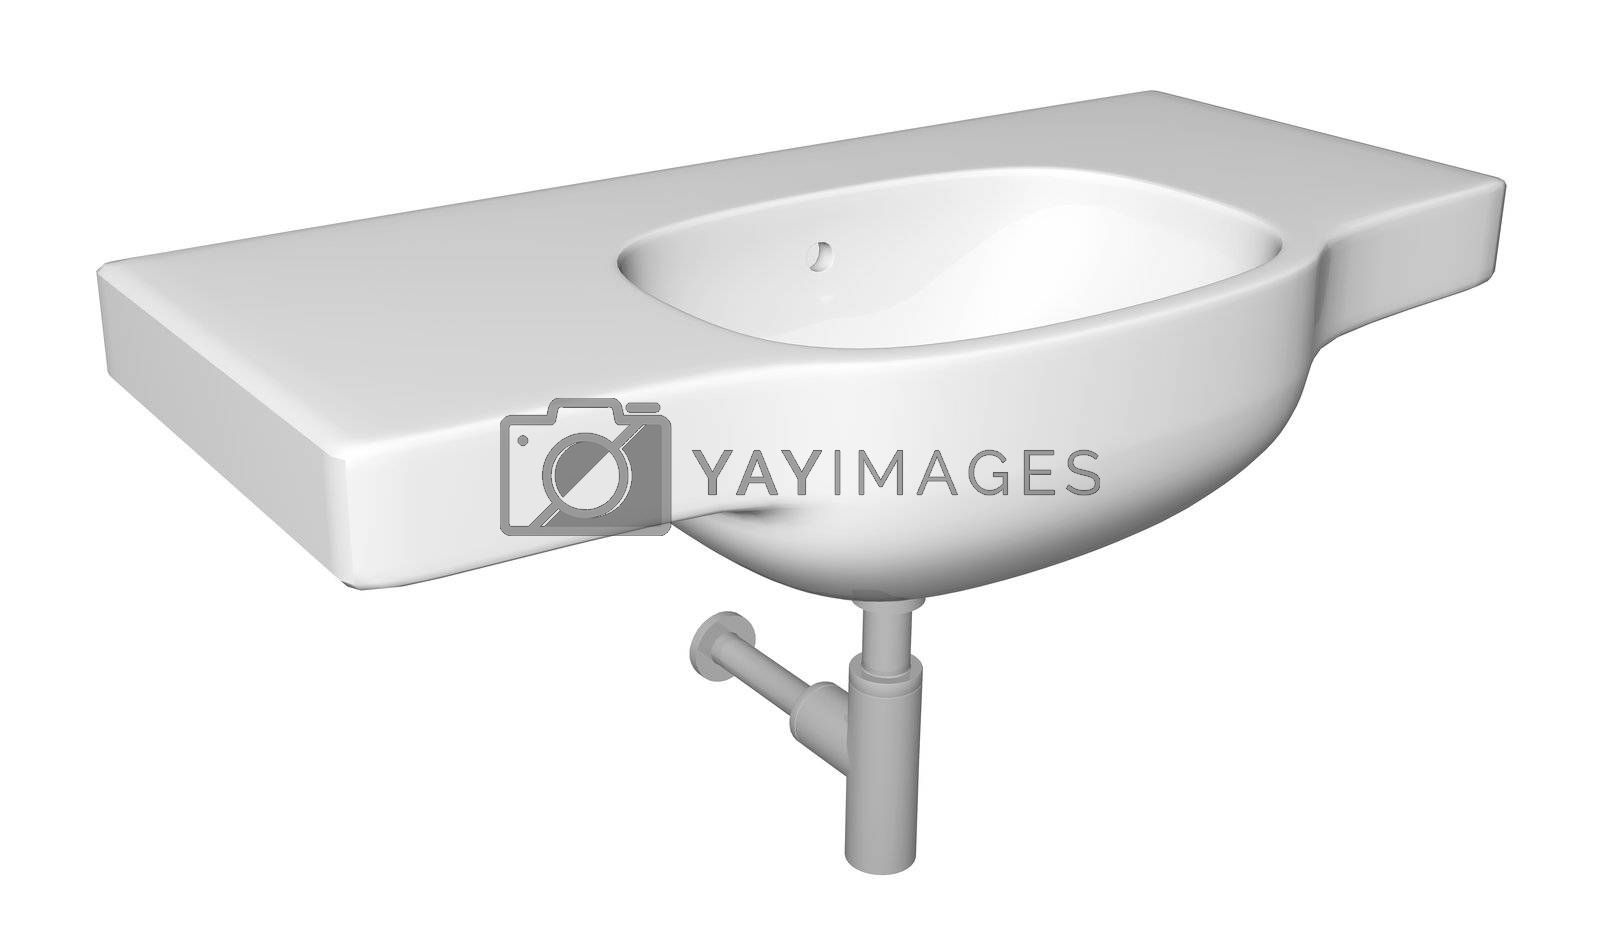 Modern washbasin or sink with faucet and plumbing fixtures, isolated against a white background.